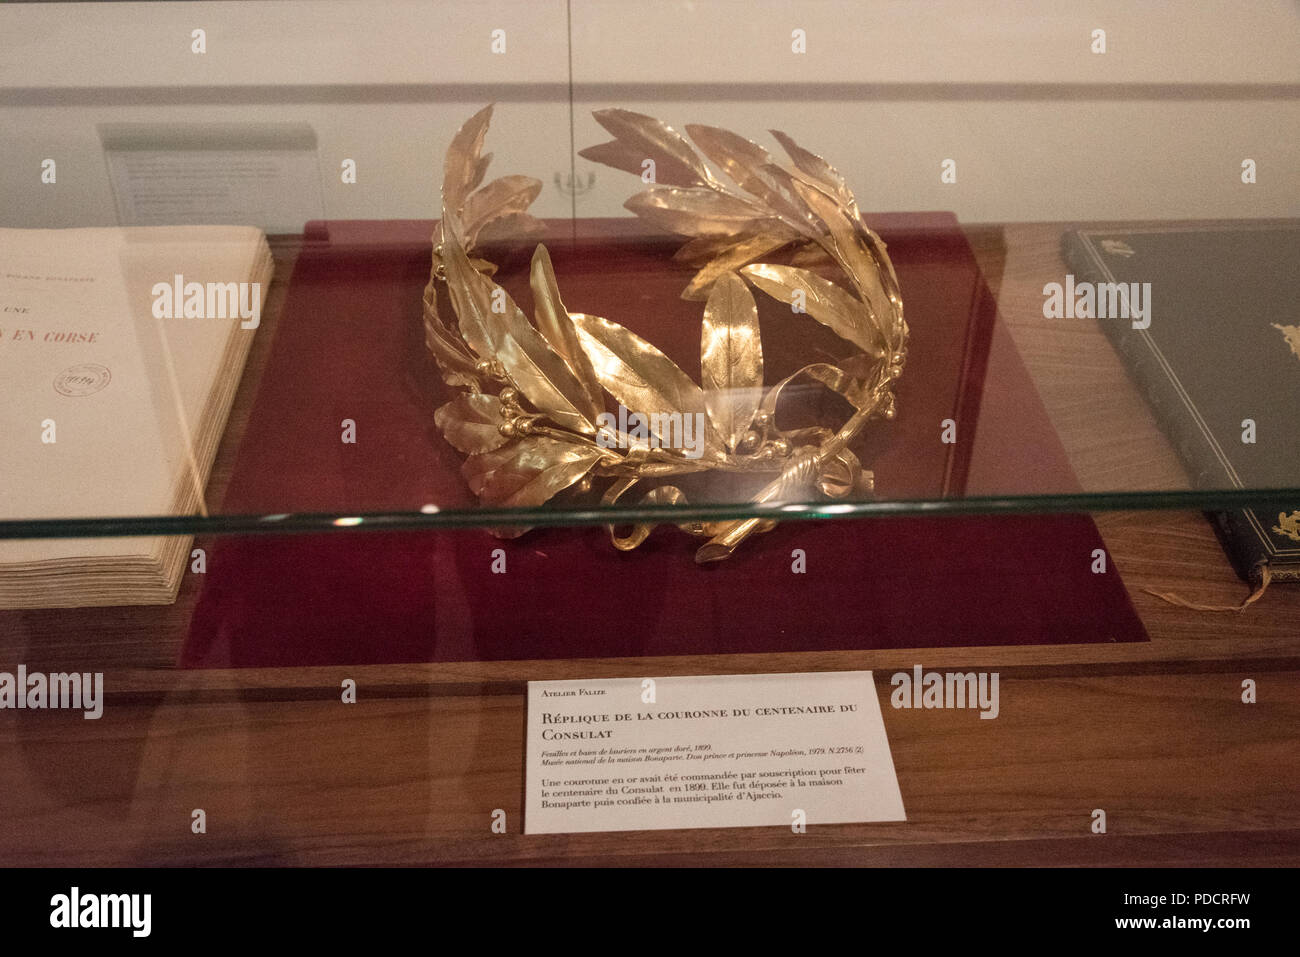 Gold Leaf Crown High Resolution Stock Photography And Images Alamy You'll receive email and feed alerts when new items arrive. https www alamy com a replica of the golden laurel leaf crown that napoleon bonaparte wore as emperor of much of occupied europe at his coronation in paris 1804 the cr image214796845 html